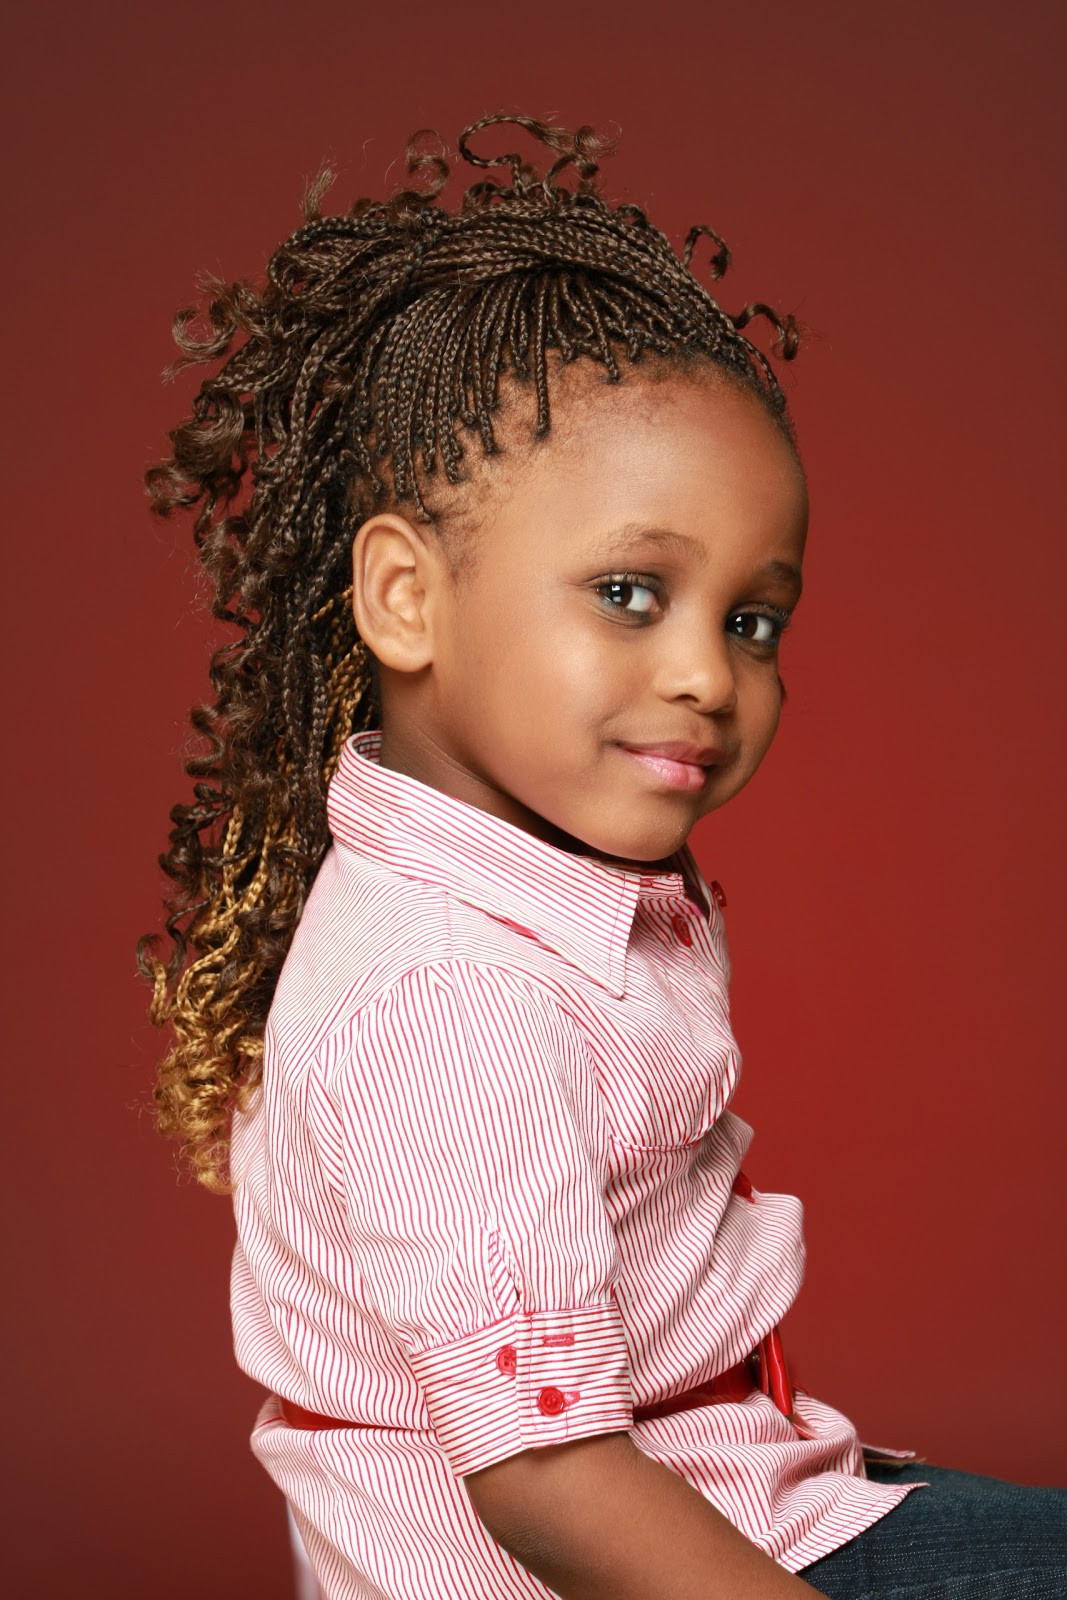 Hair Styles For Children  20 Hairstyles for Kids with MagMent